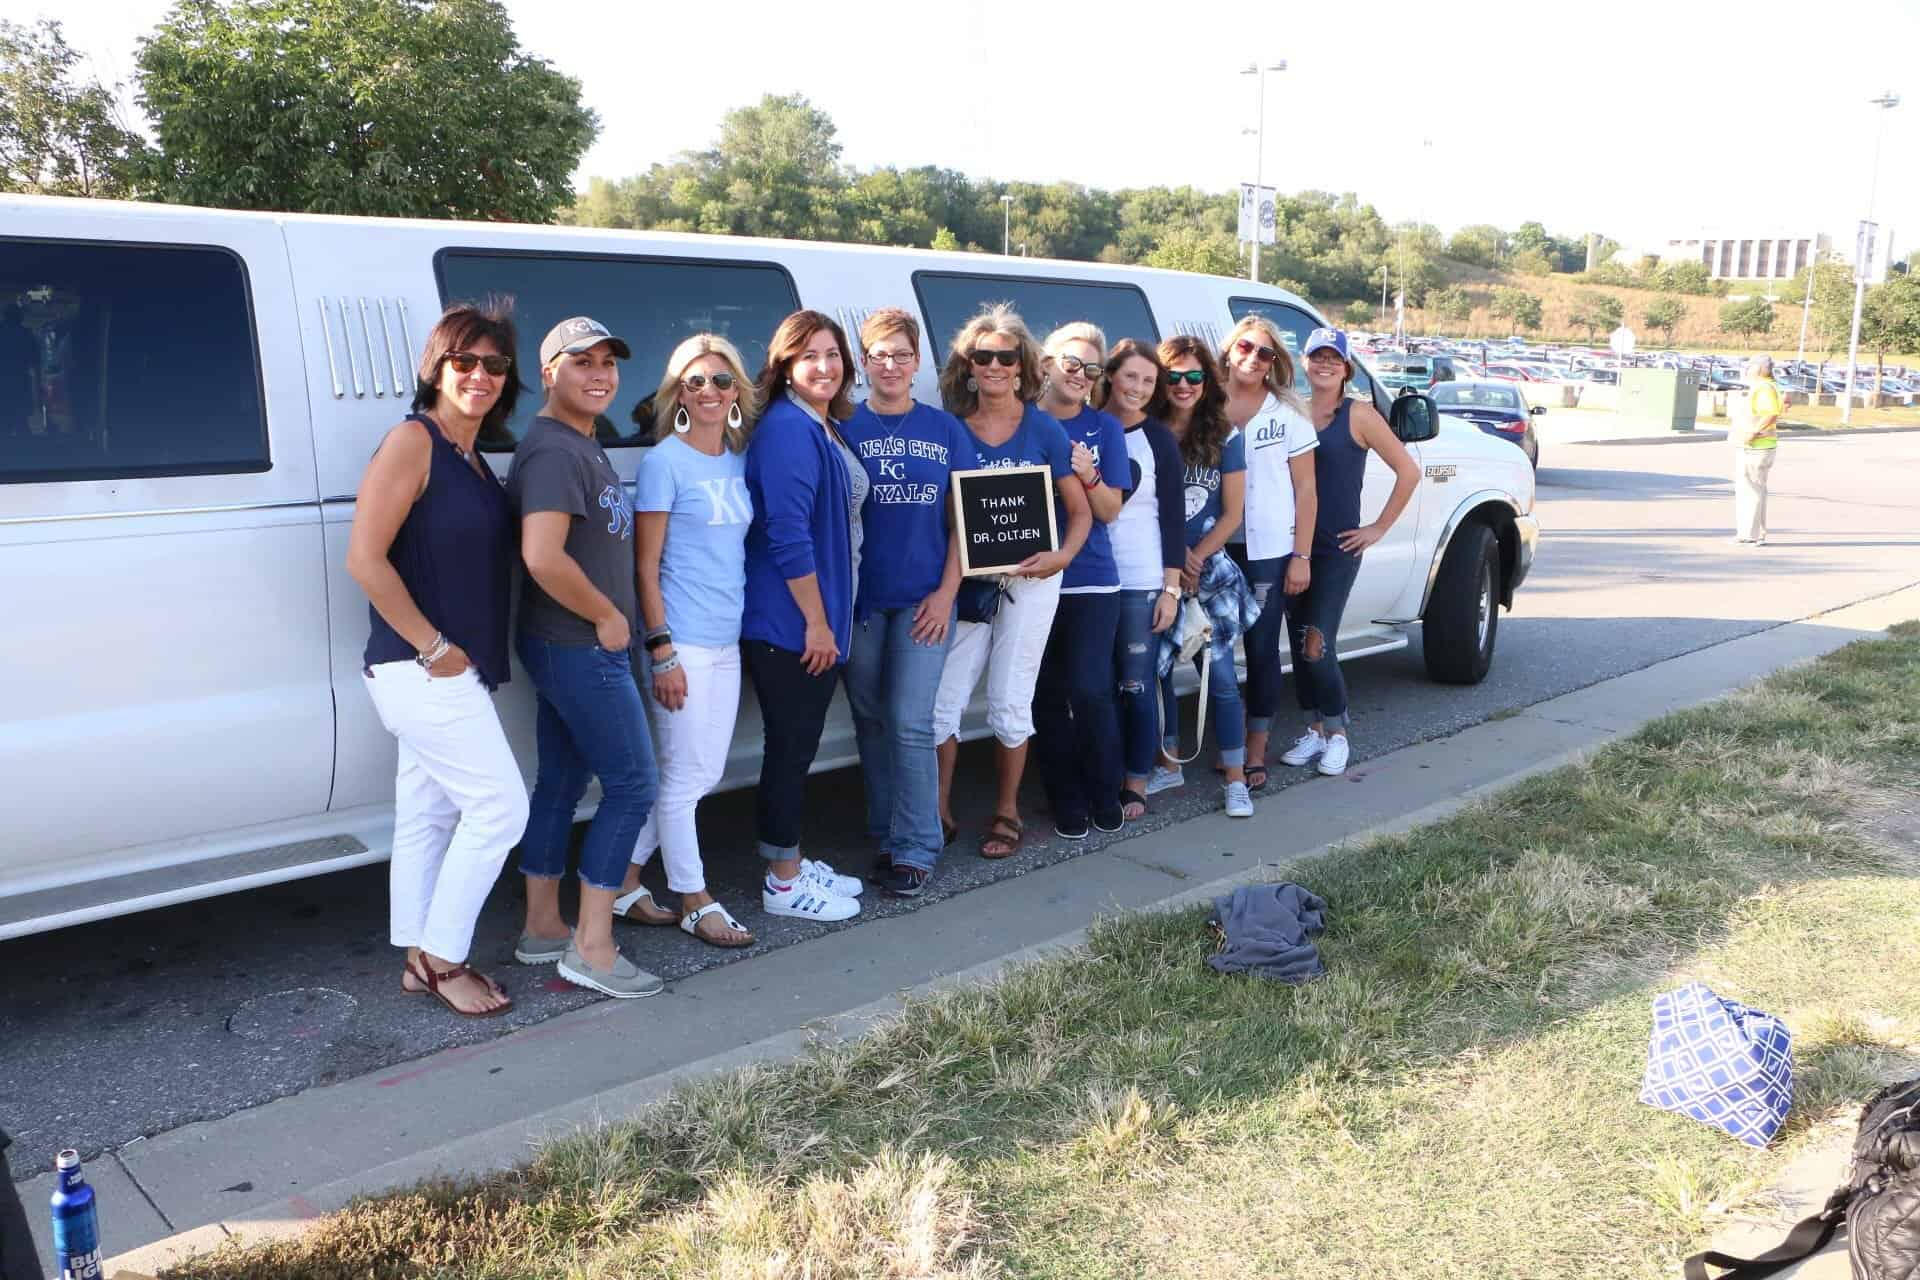 Group-limo-at-royals  - Braces and Invisalign in Kansas City, Overland Park, Olathe, and Paola, Kansas - Oltjen Orthodontics